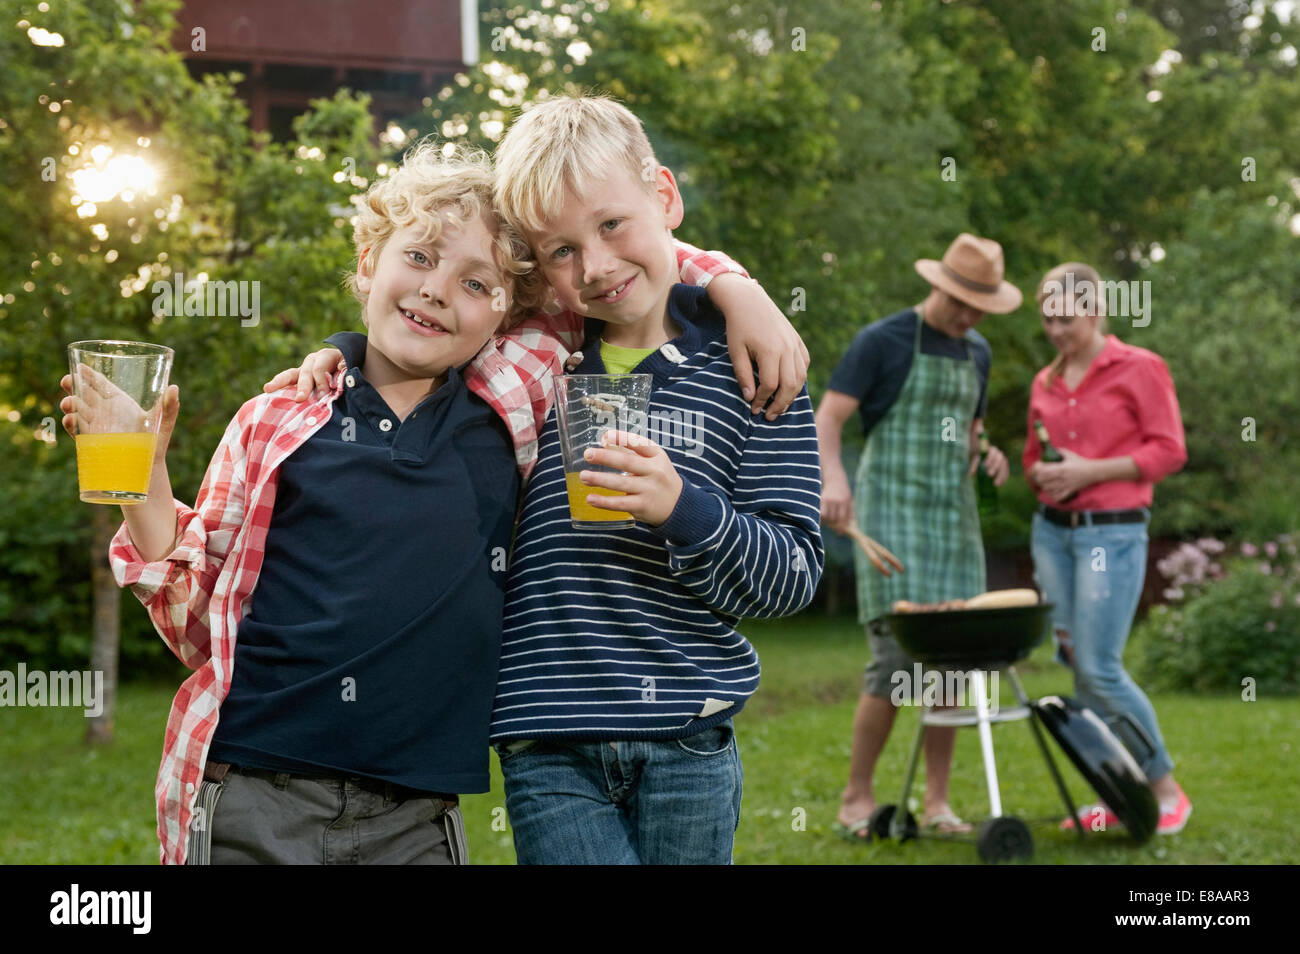 Barbecue familial parents amis garçons jardin Photo Stock